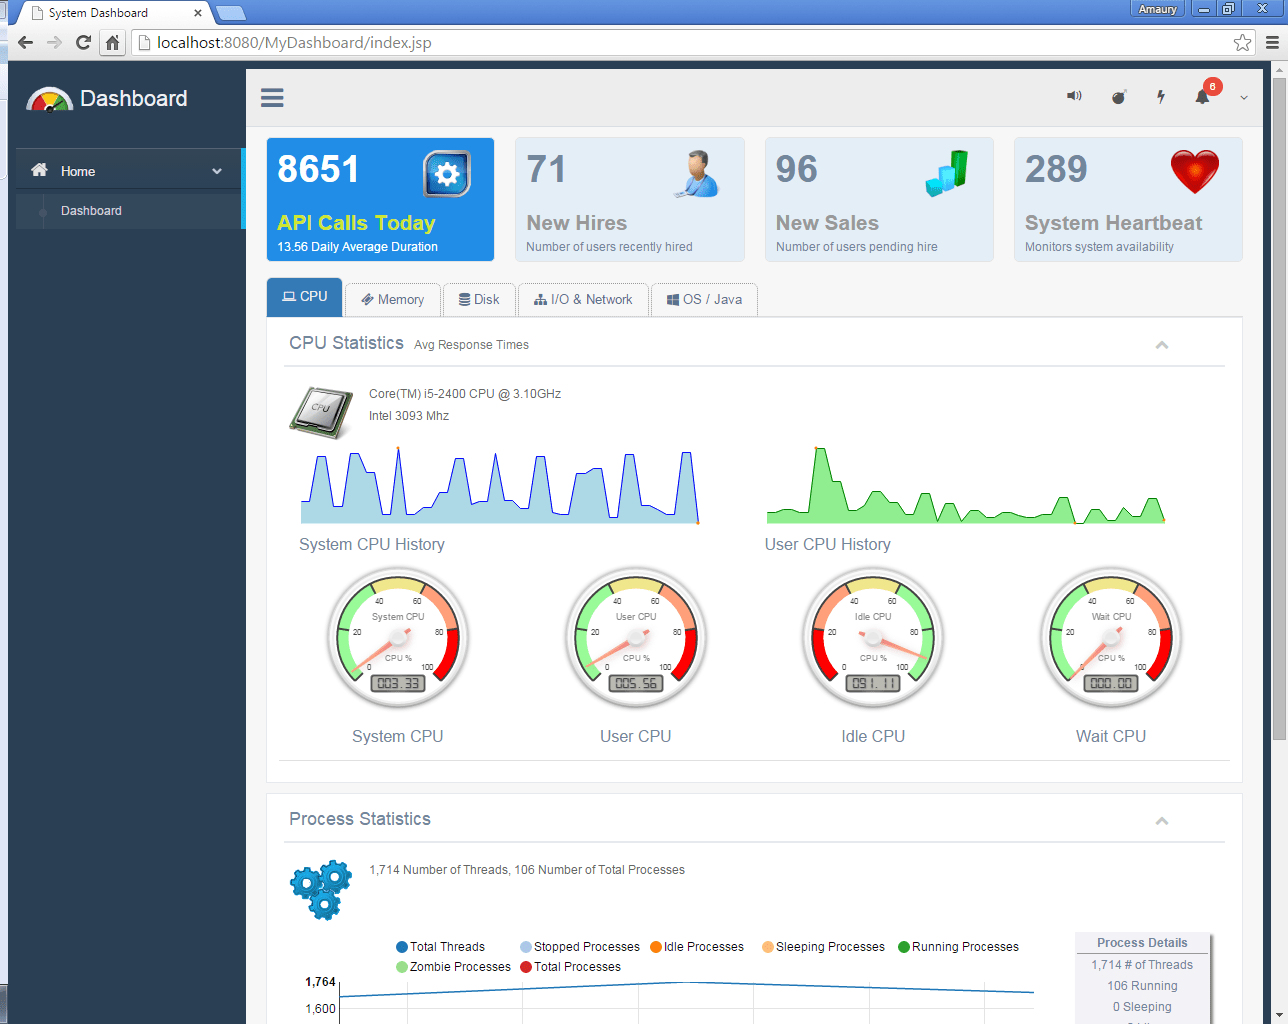 Build Realtime Dashboard using AngularJS, Bootstrap UI - Part 1